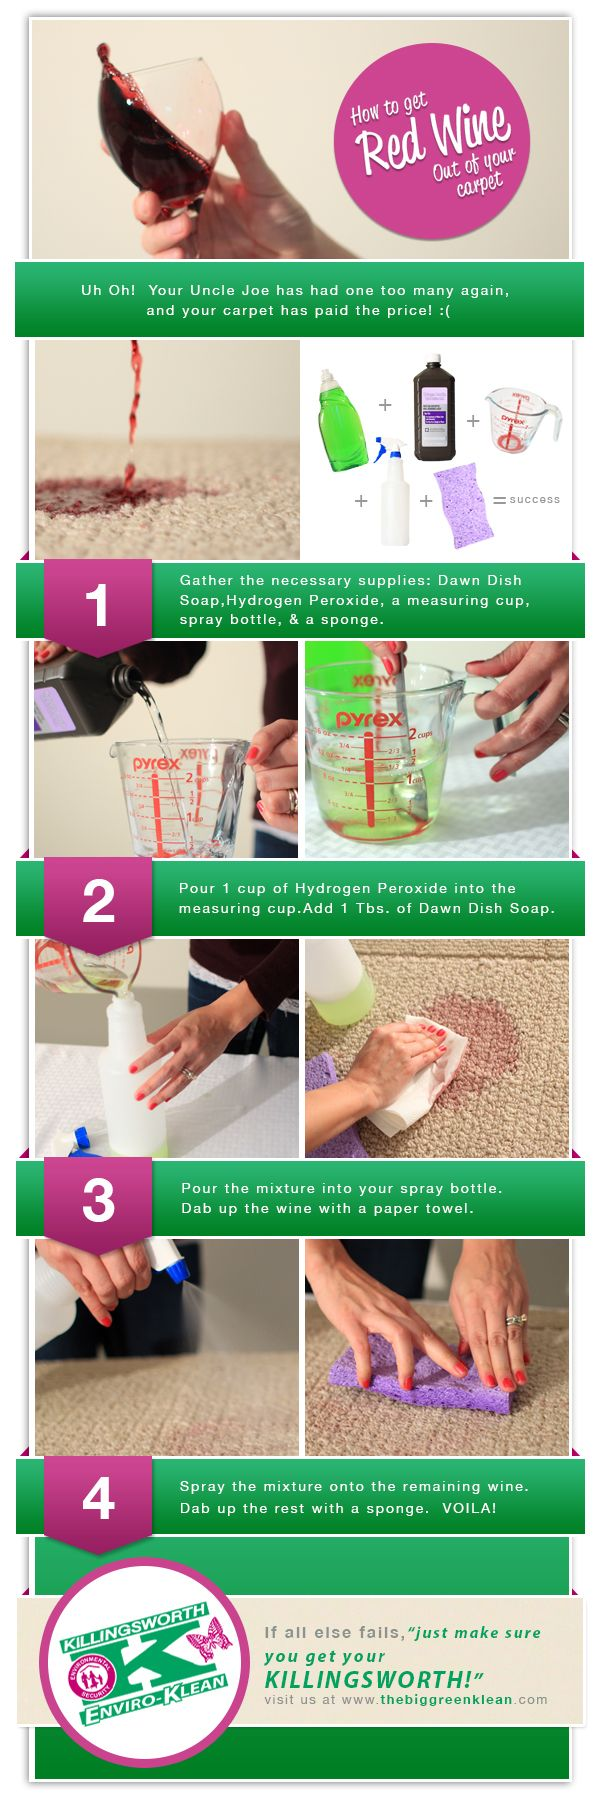 How to get Red Wine out of your carpet.